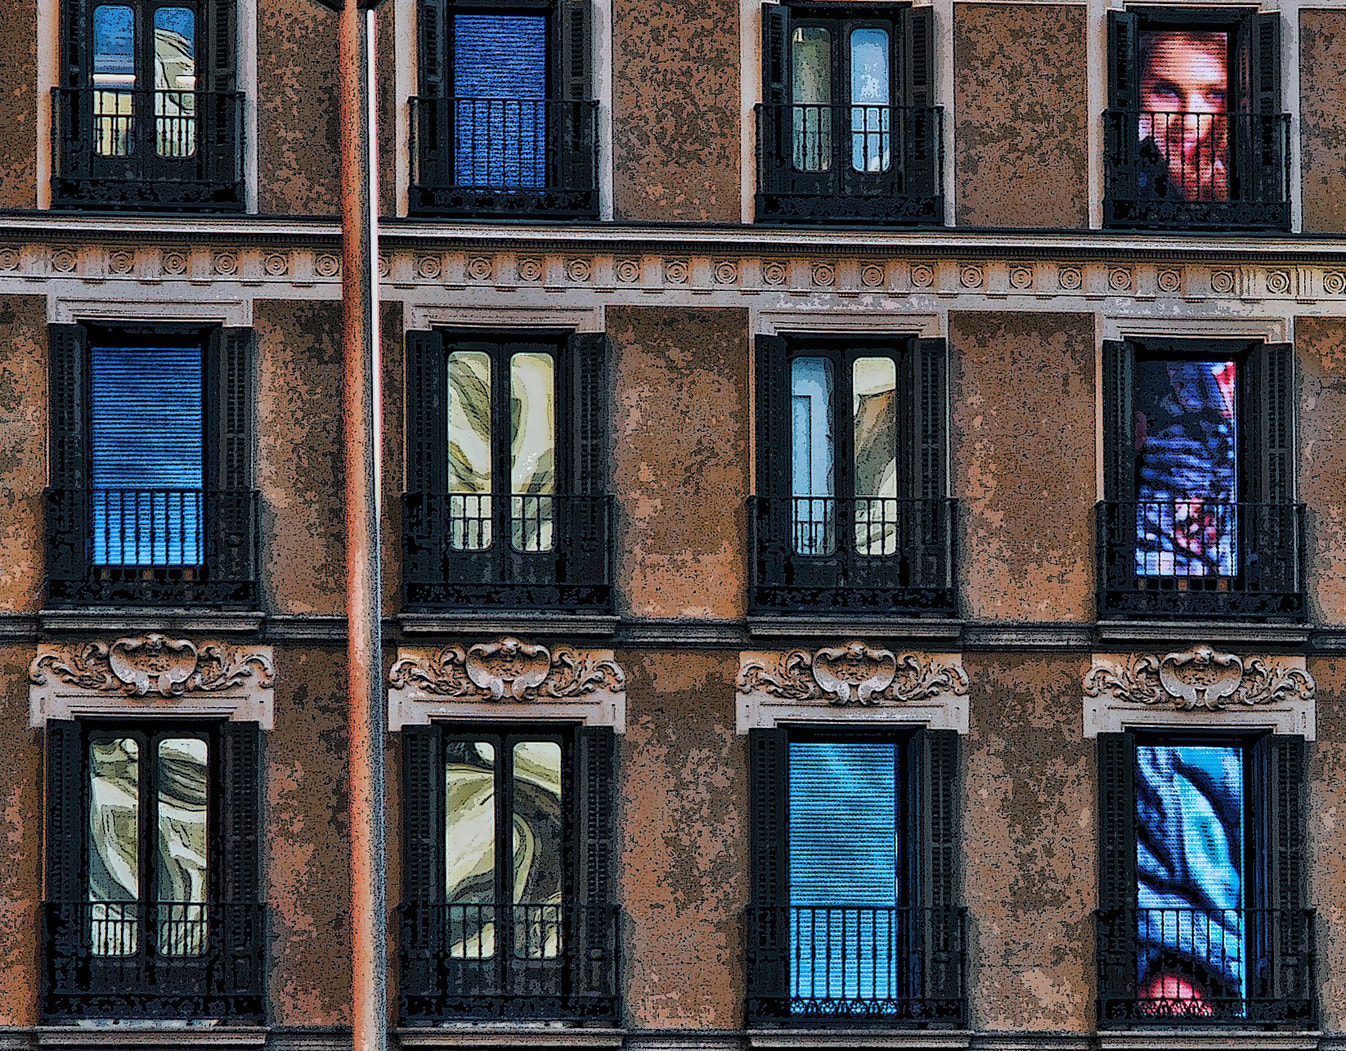 Photograph VENTANAS... by Luis Ferenczi on 500px